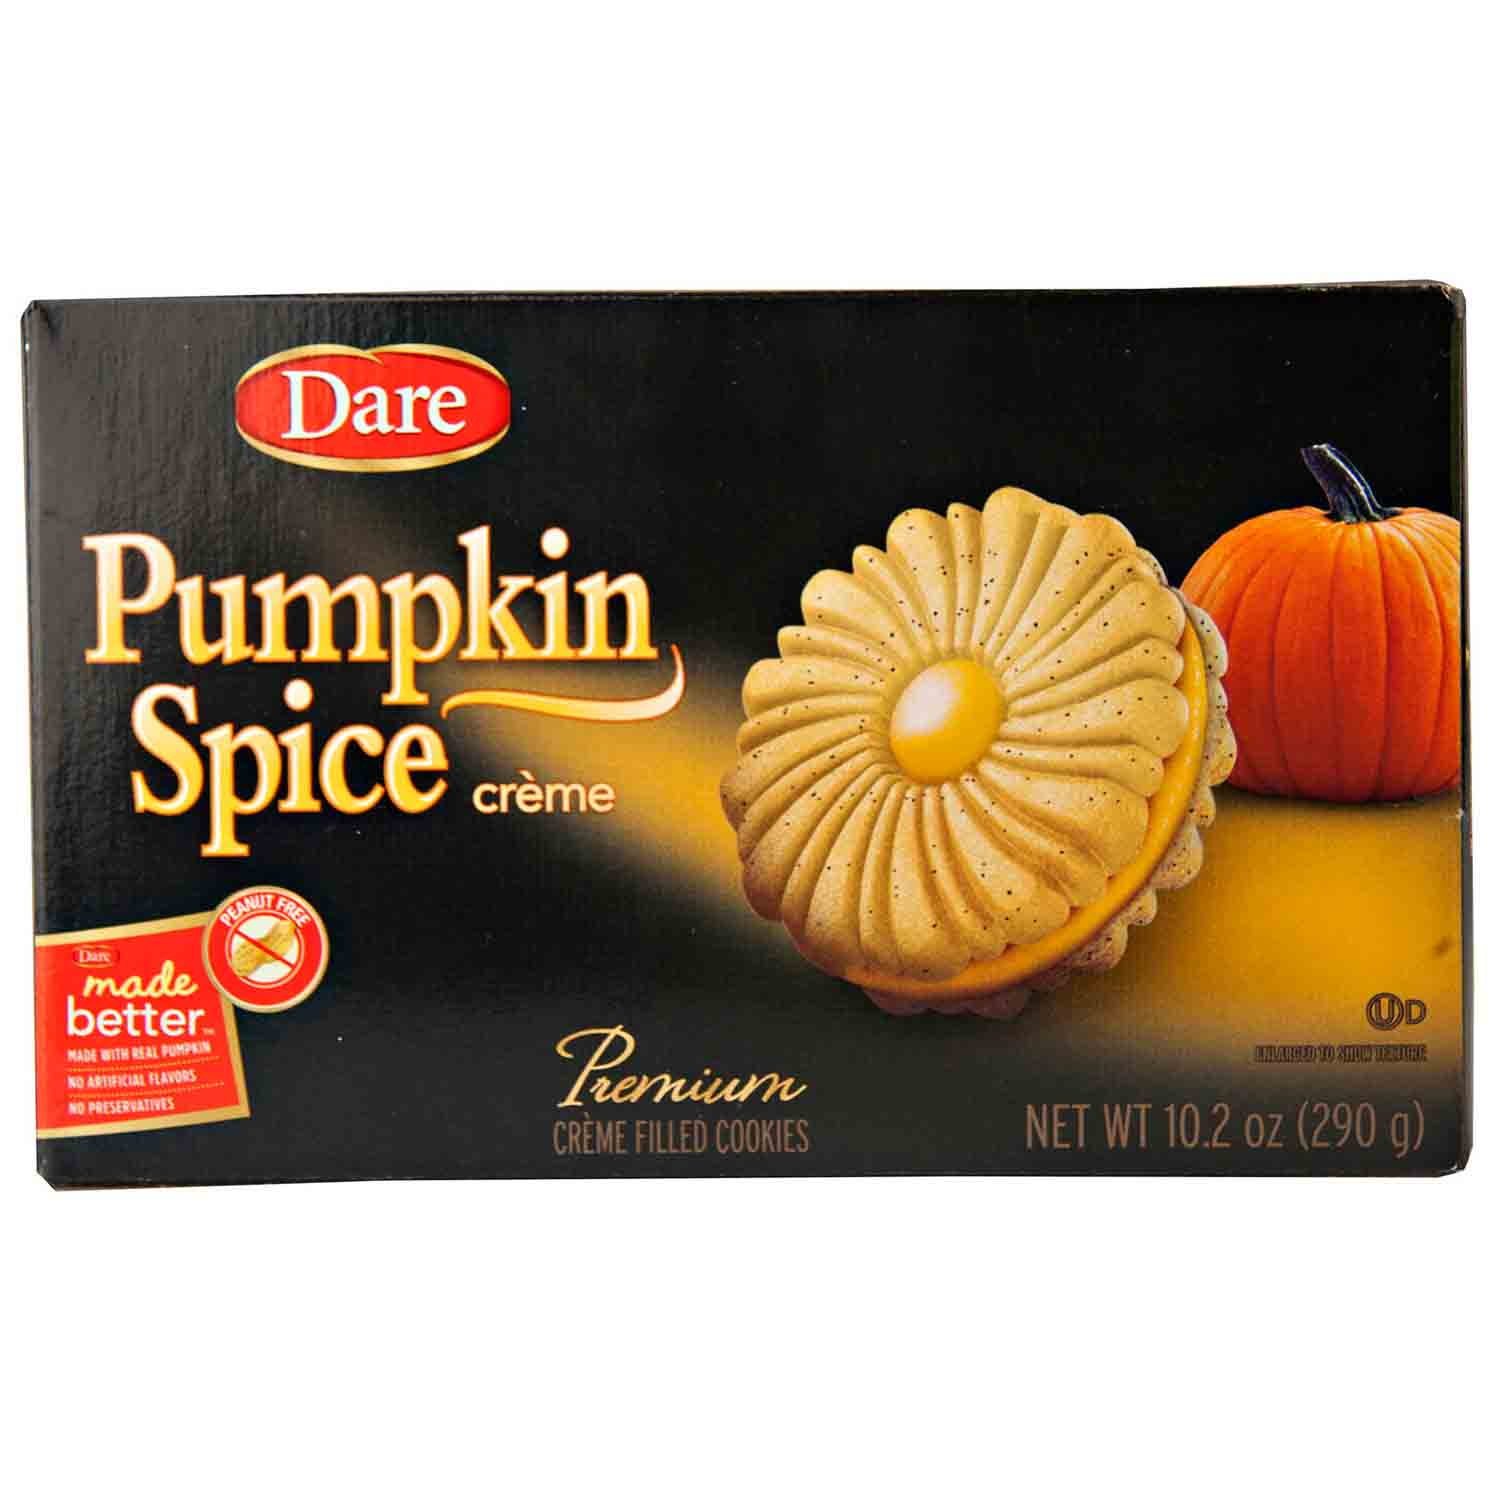 Pumpkin Spice Cookies by Dare